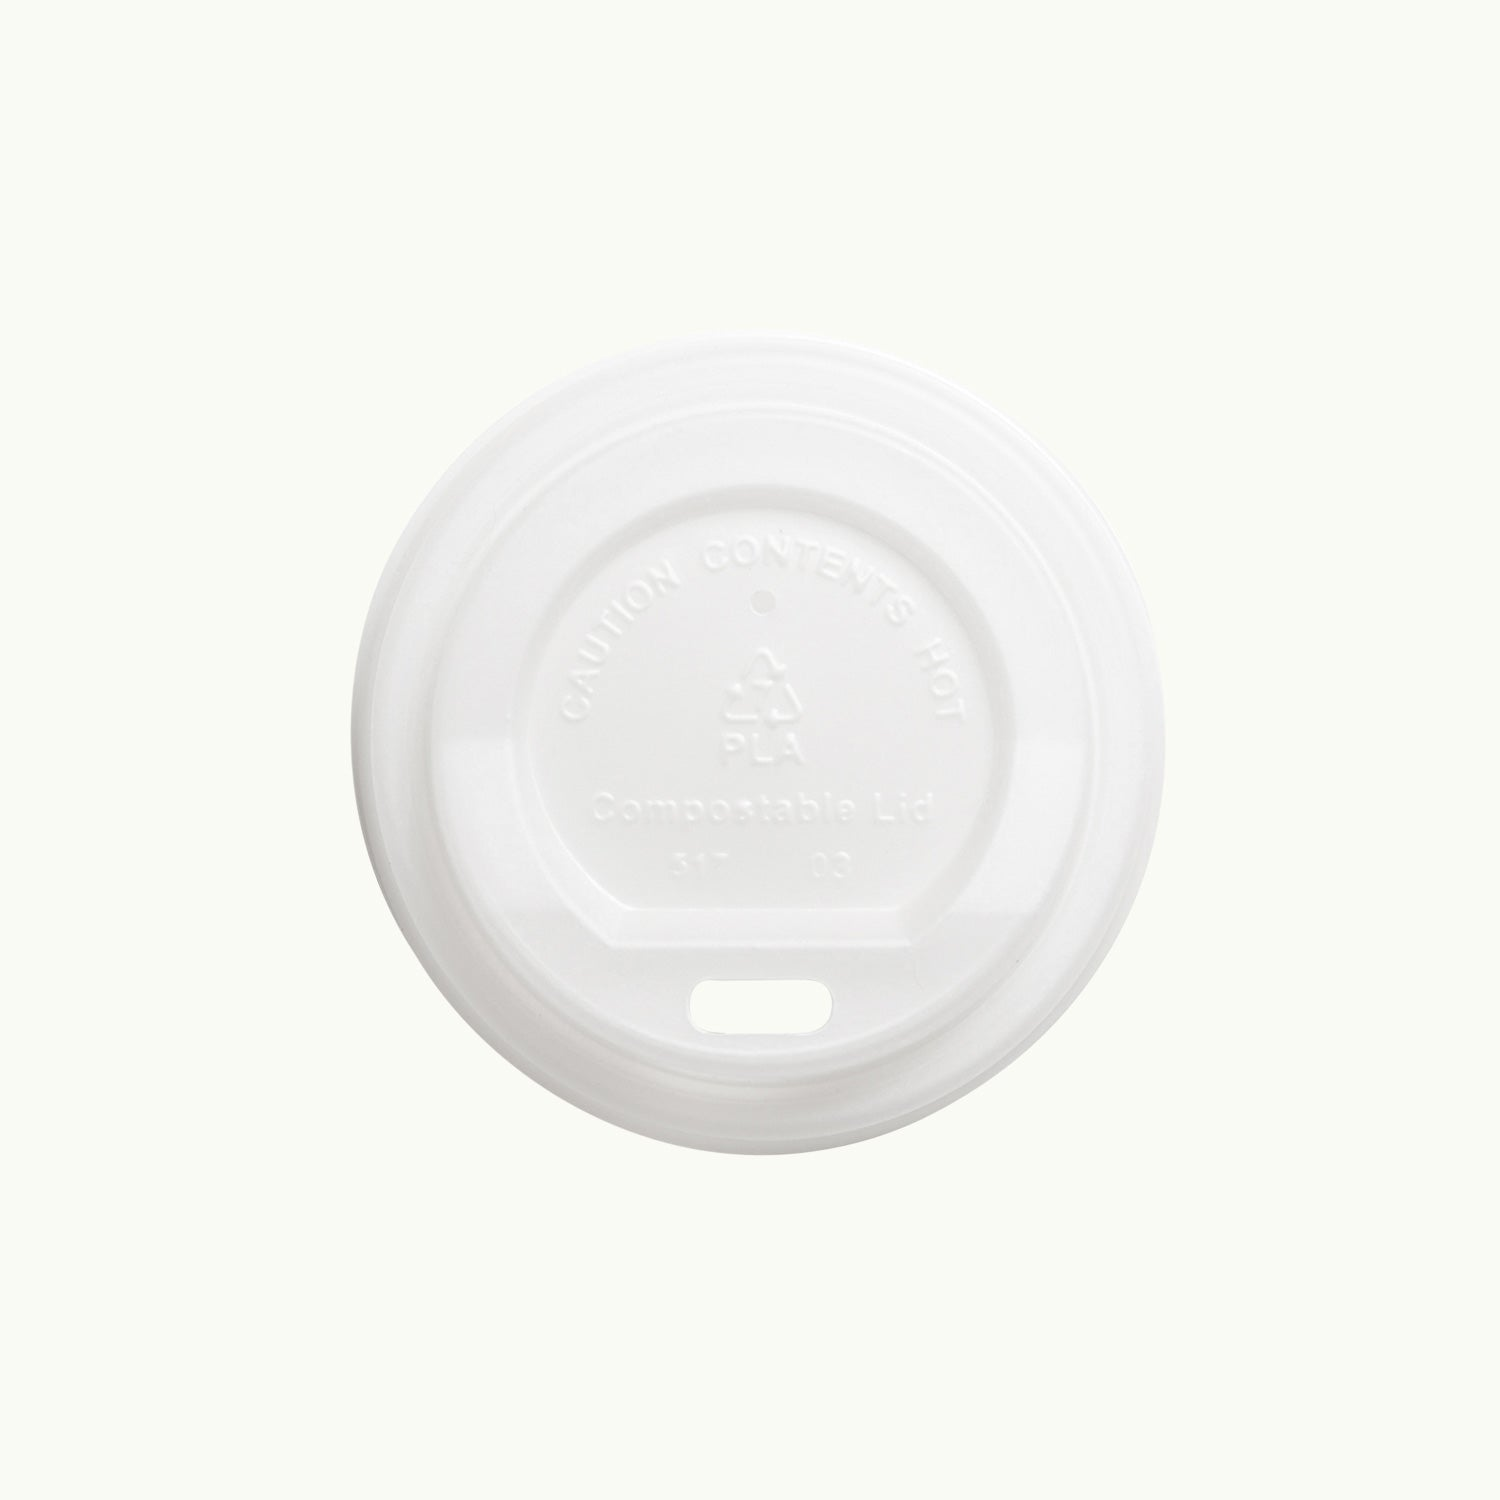 Bioplastic EcoCup Lid - WHITE